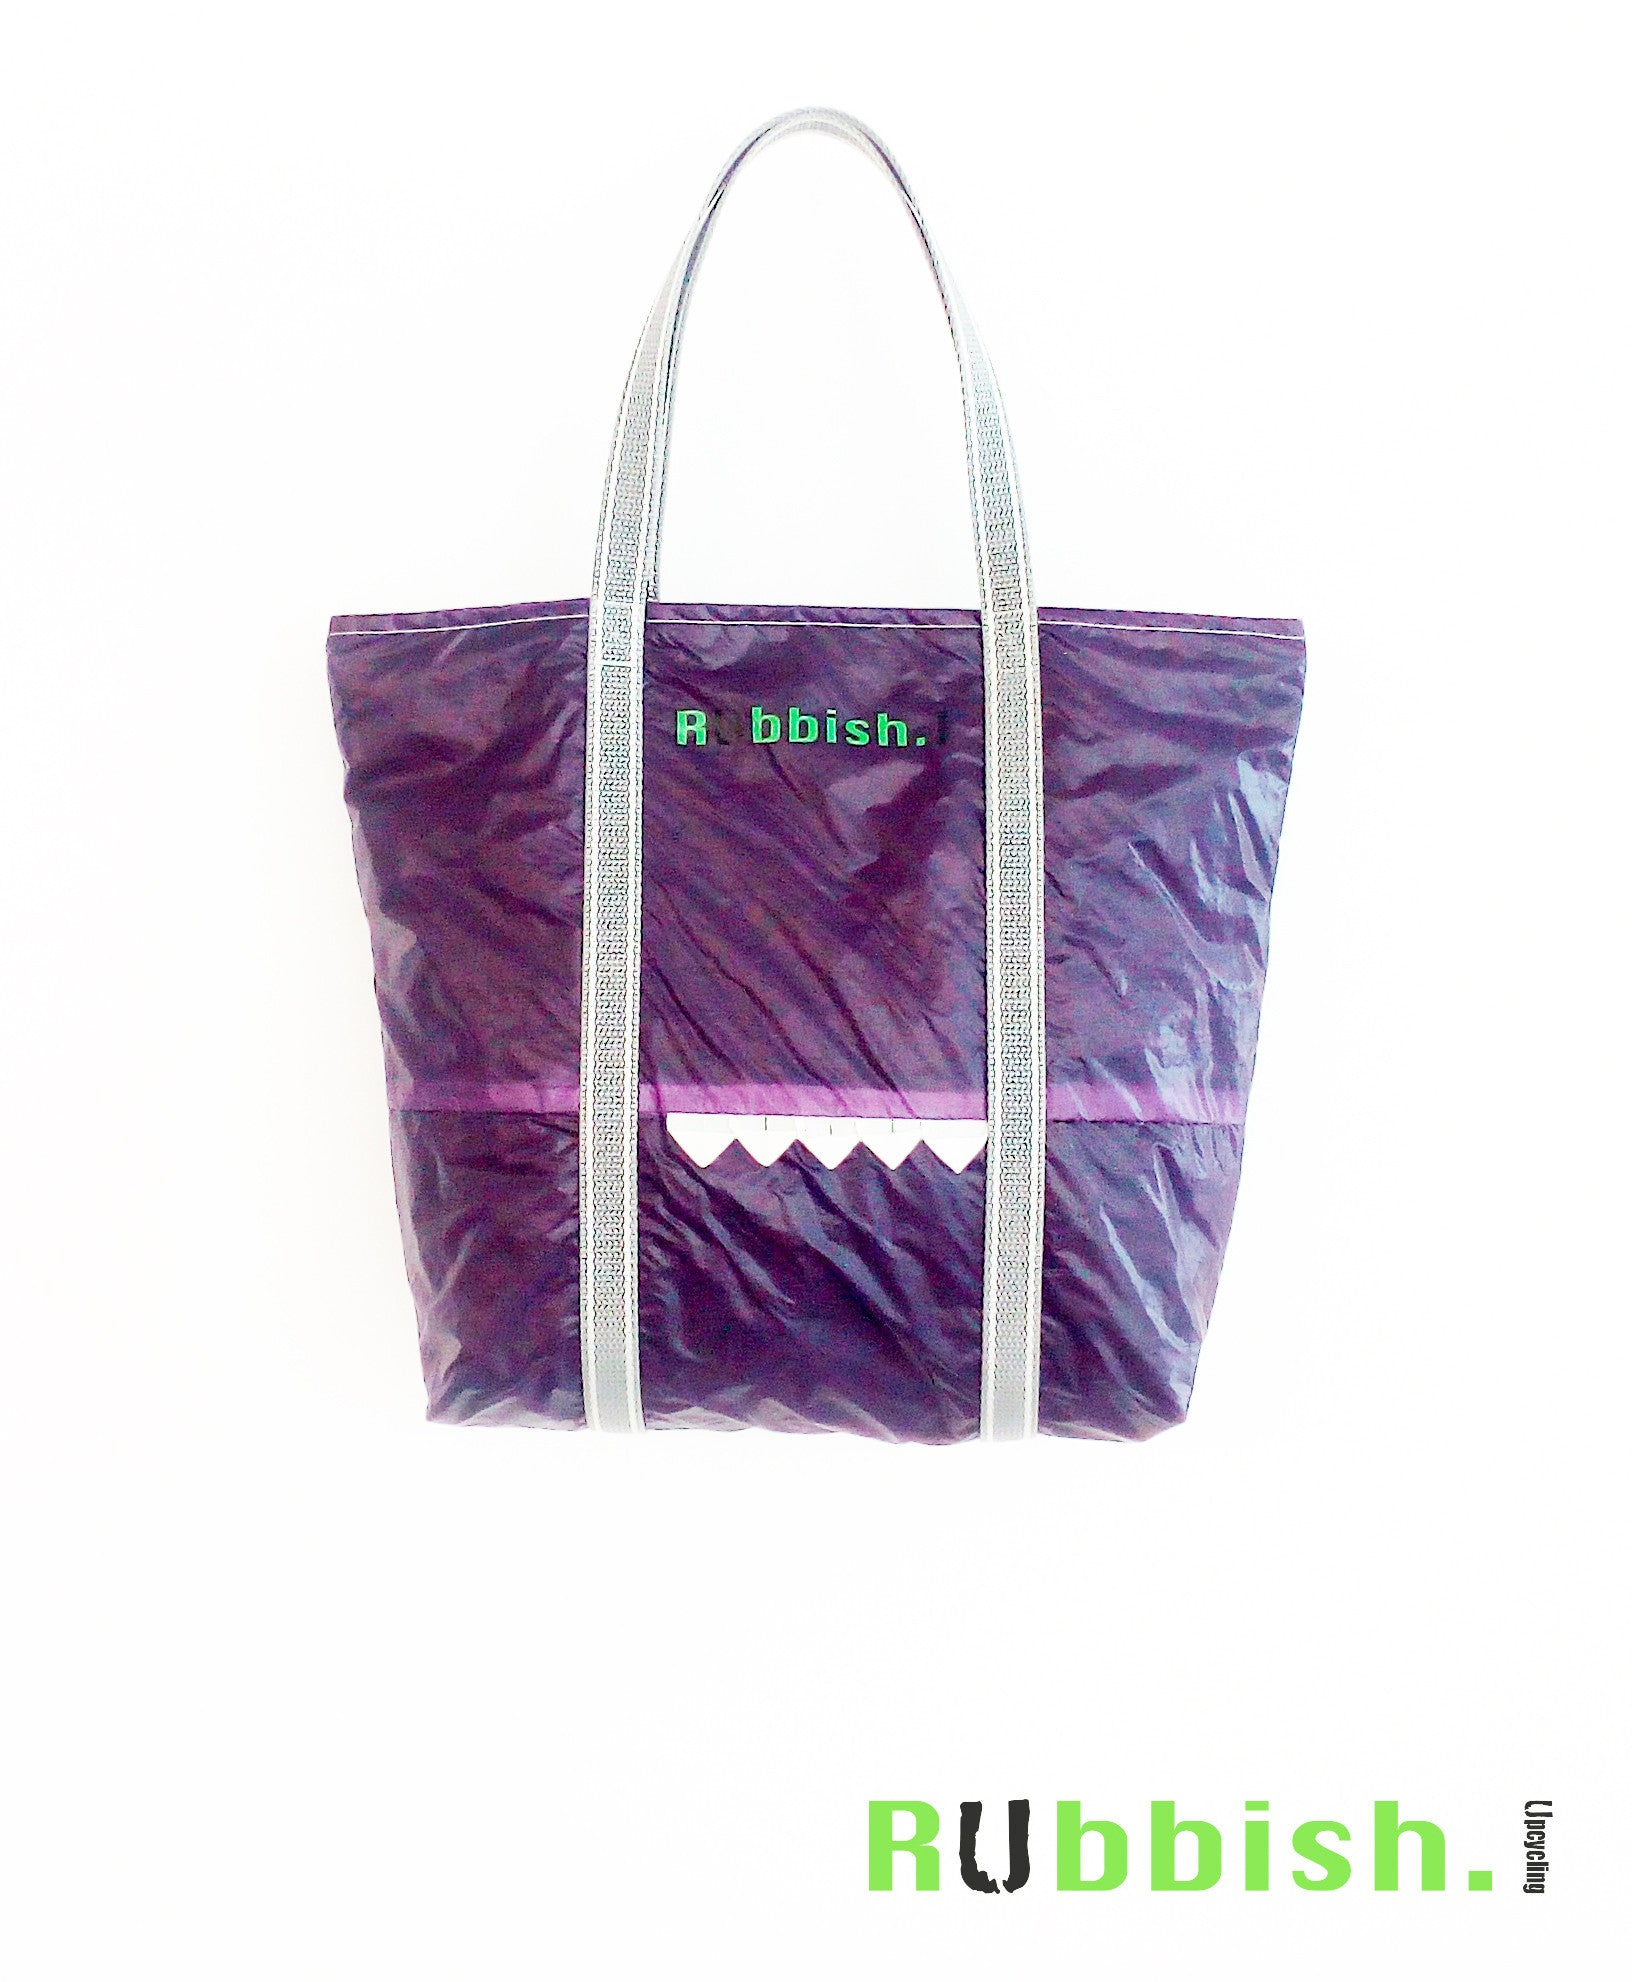 beach bag made of kite or paraglider